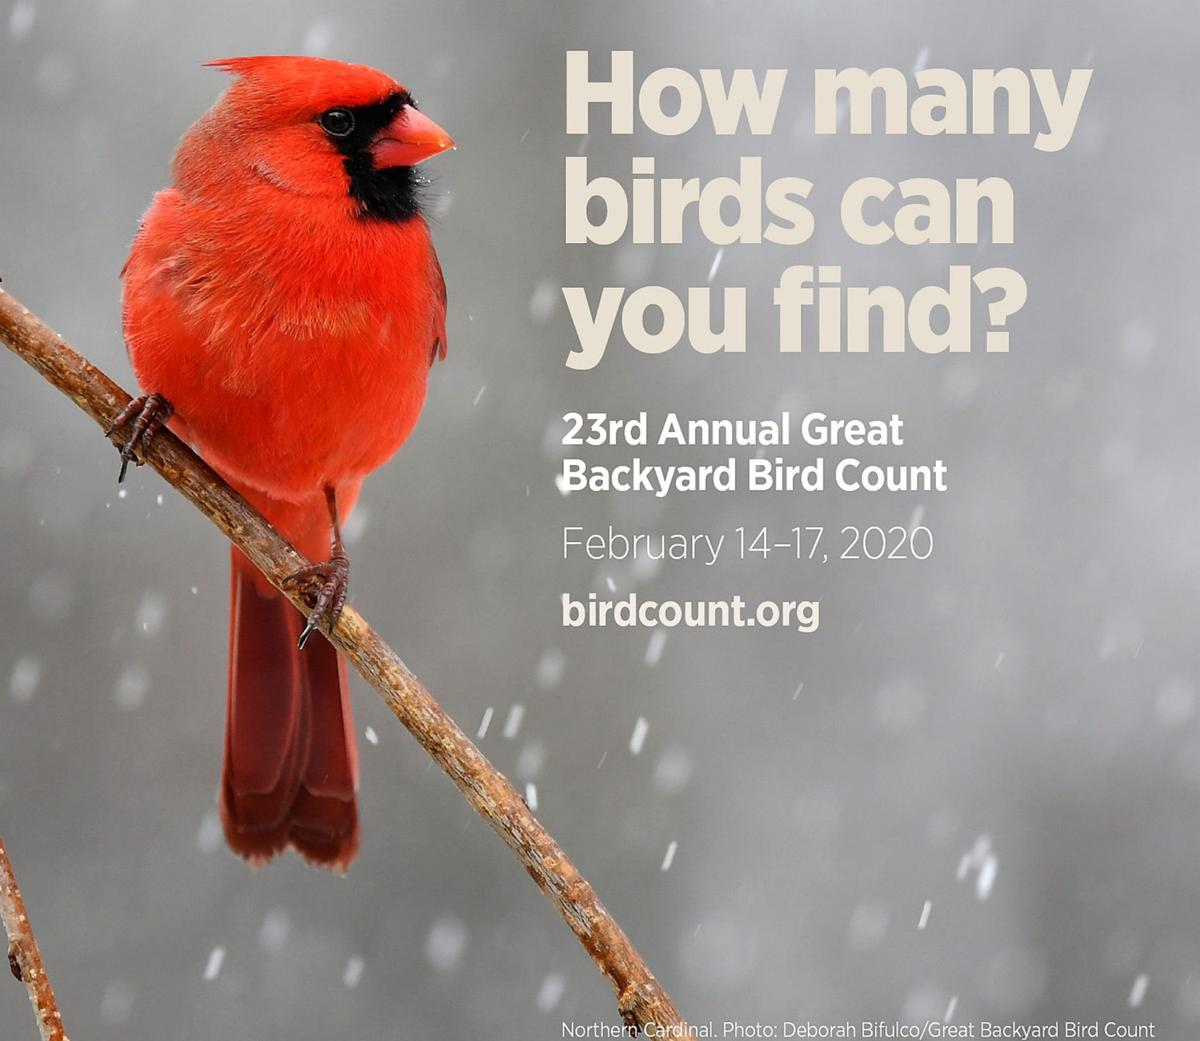 Backyard Bird Count needs volunteers